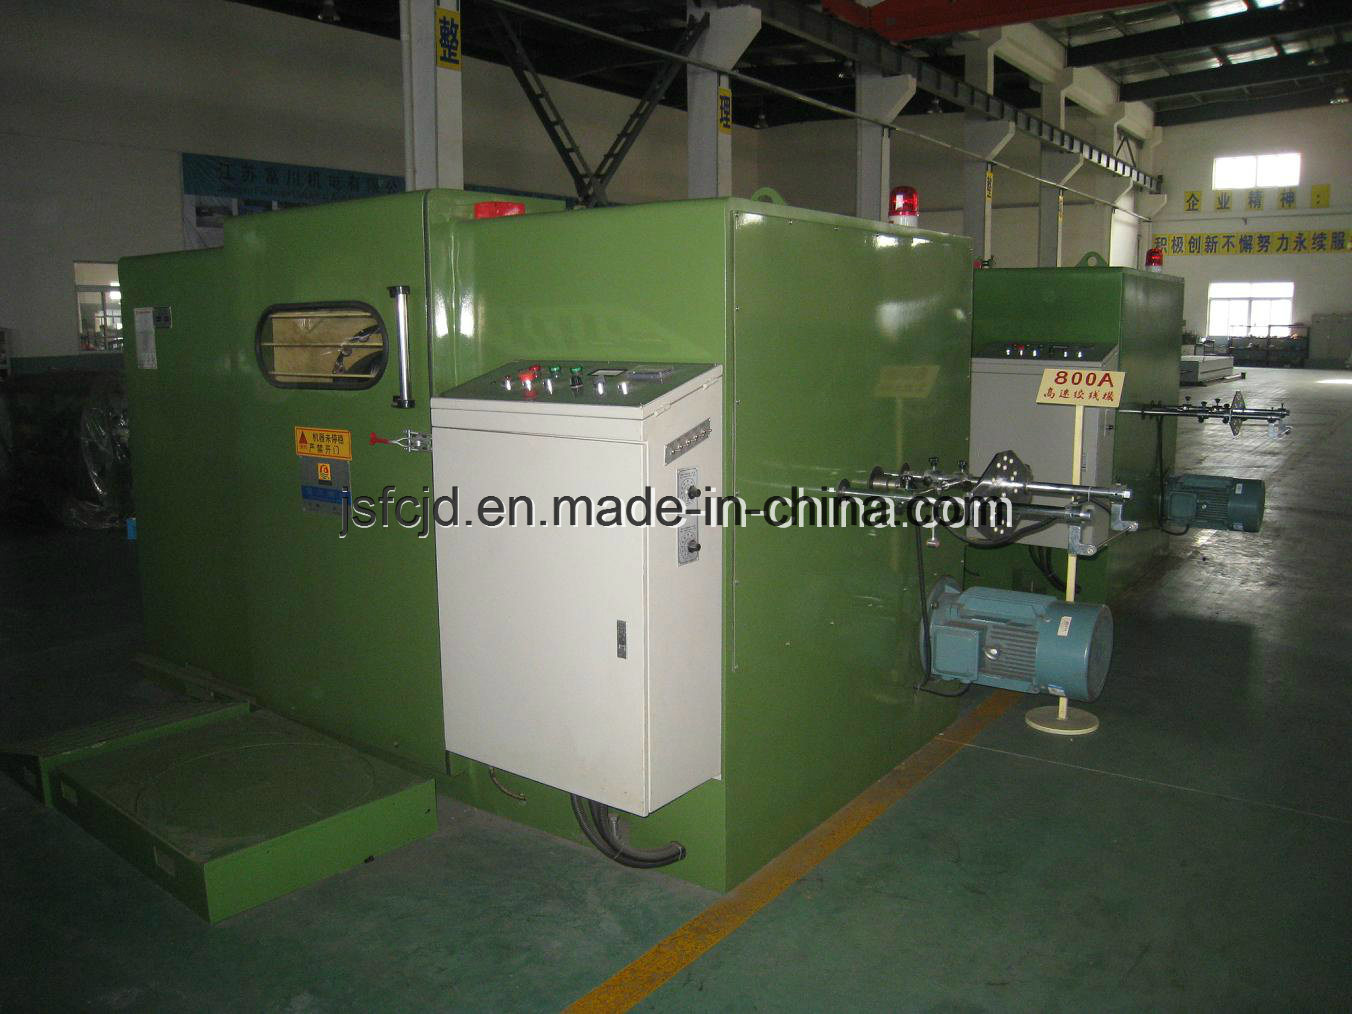 Bare Copper Wire Double Twisting Twister Bunching Buncher Stranding Strander Annealer Extrusion Machine (FC-800A)